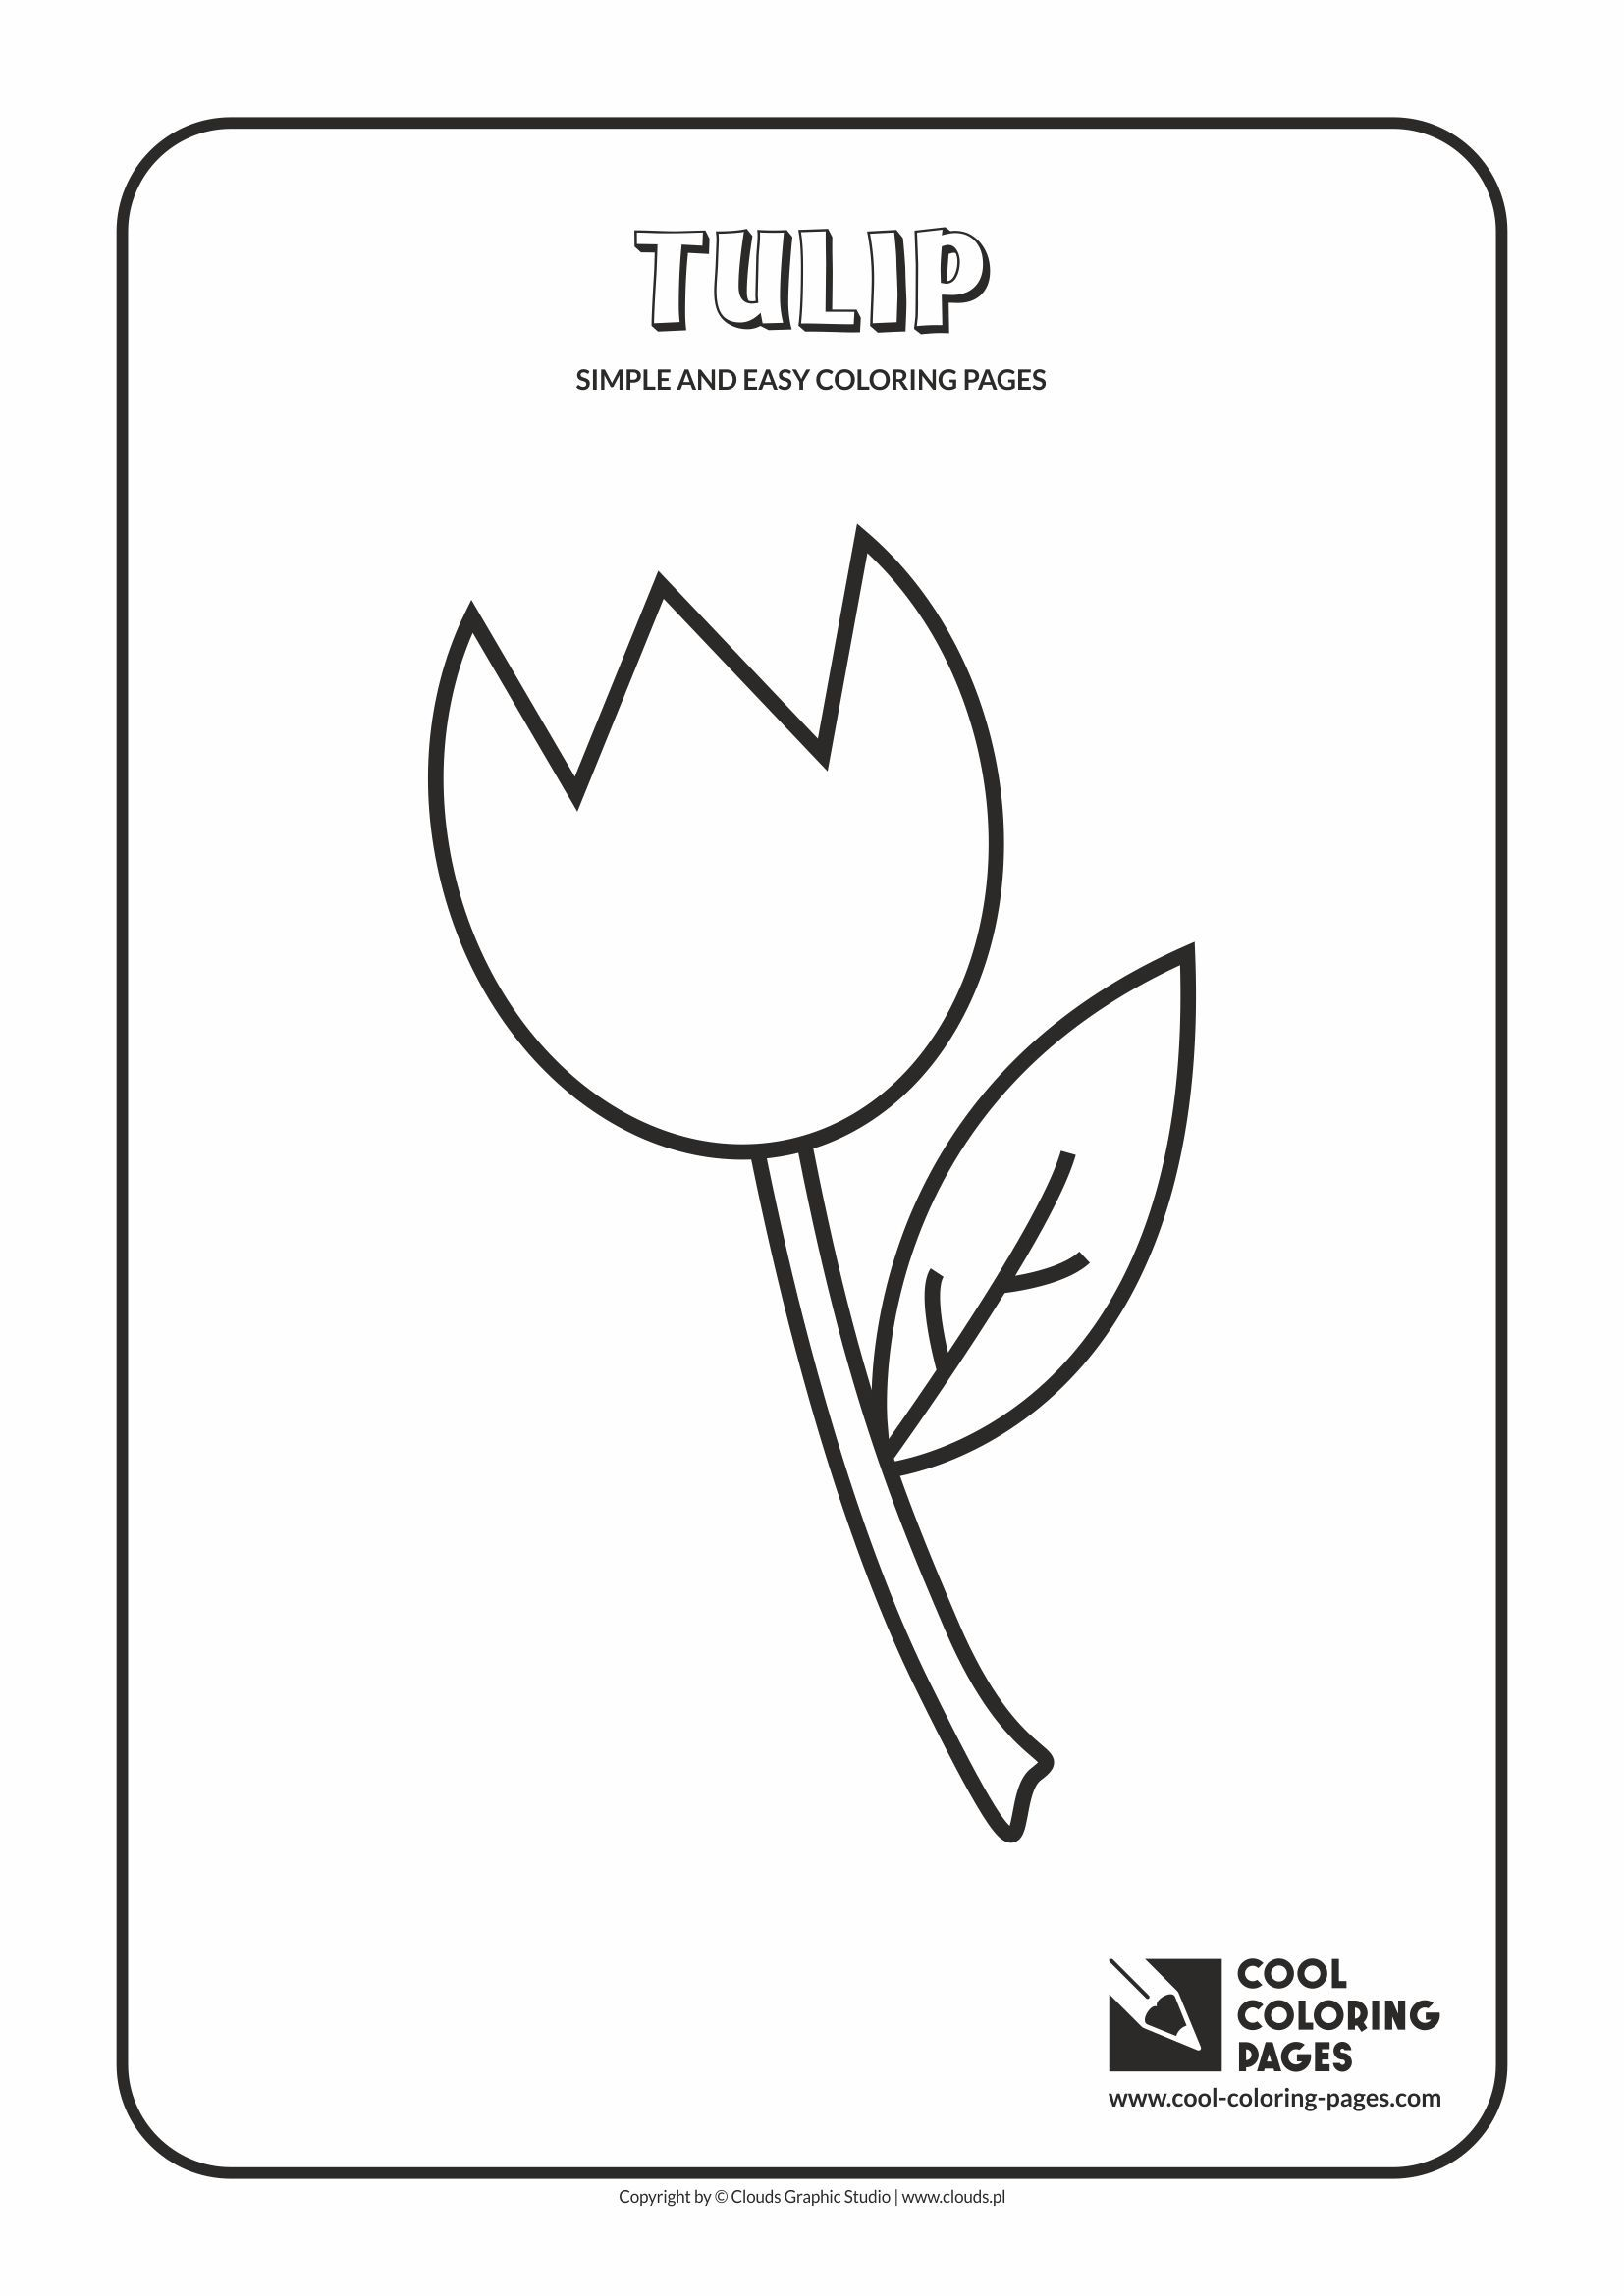 Easy coloring pages for toddlers - Simple And Easy Coloring Pages For Toddlers Tulip